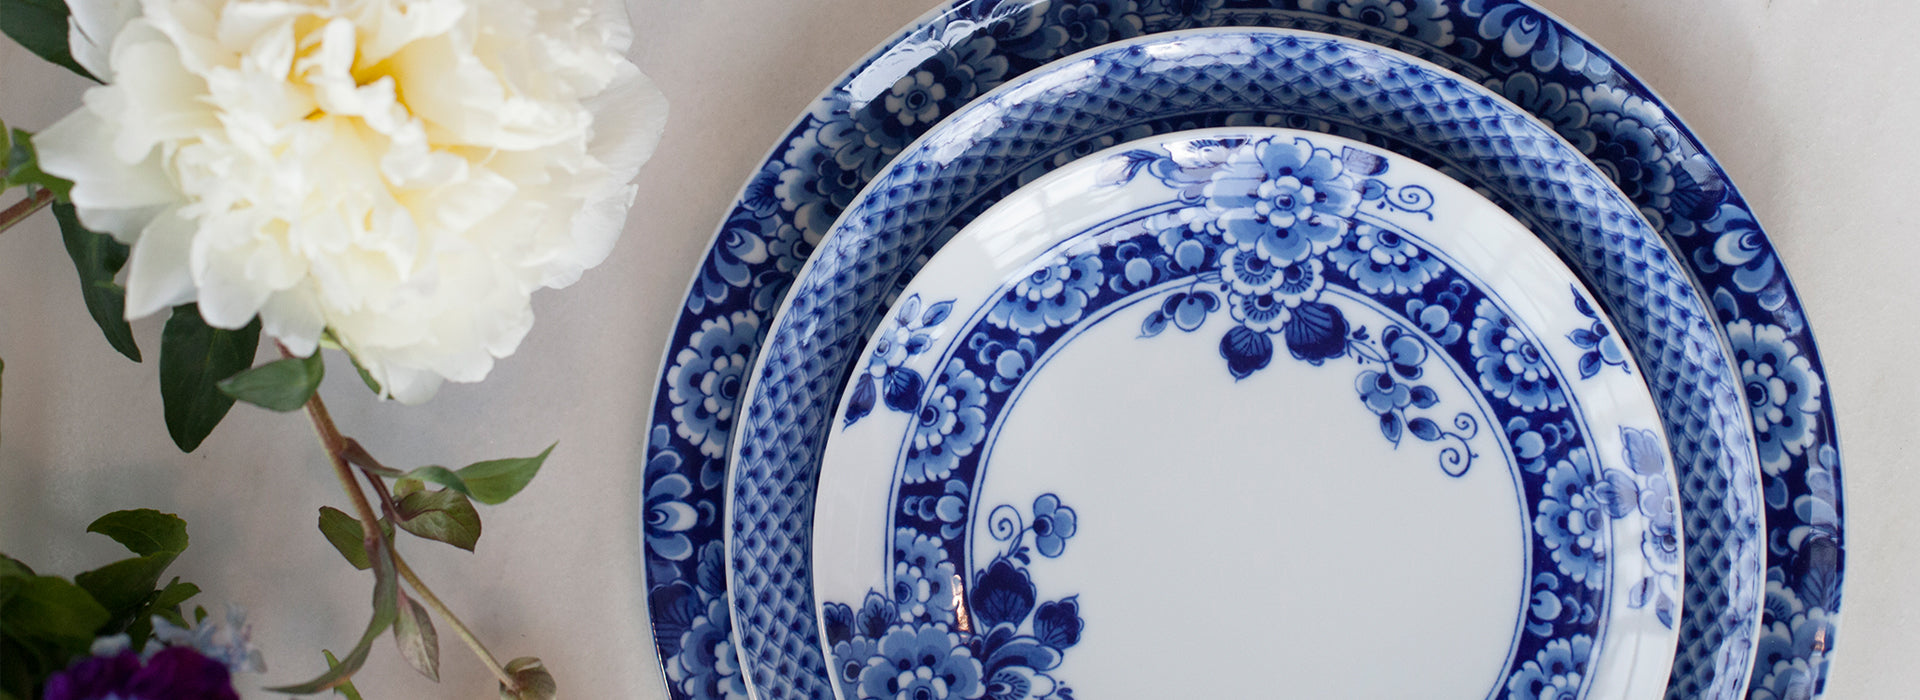 The Blue Ming porcelain dinnerware collection by Dutch designer Marcel Wanders with Vista Alegre is a stunning ex&le of Delftware with a modern twist. & Blue Ming Dinnerware by Marcel Wanders - Fruit Bowl